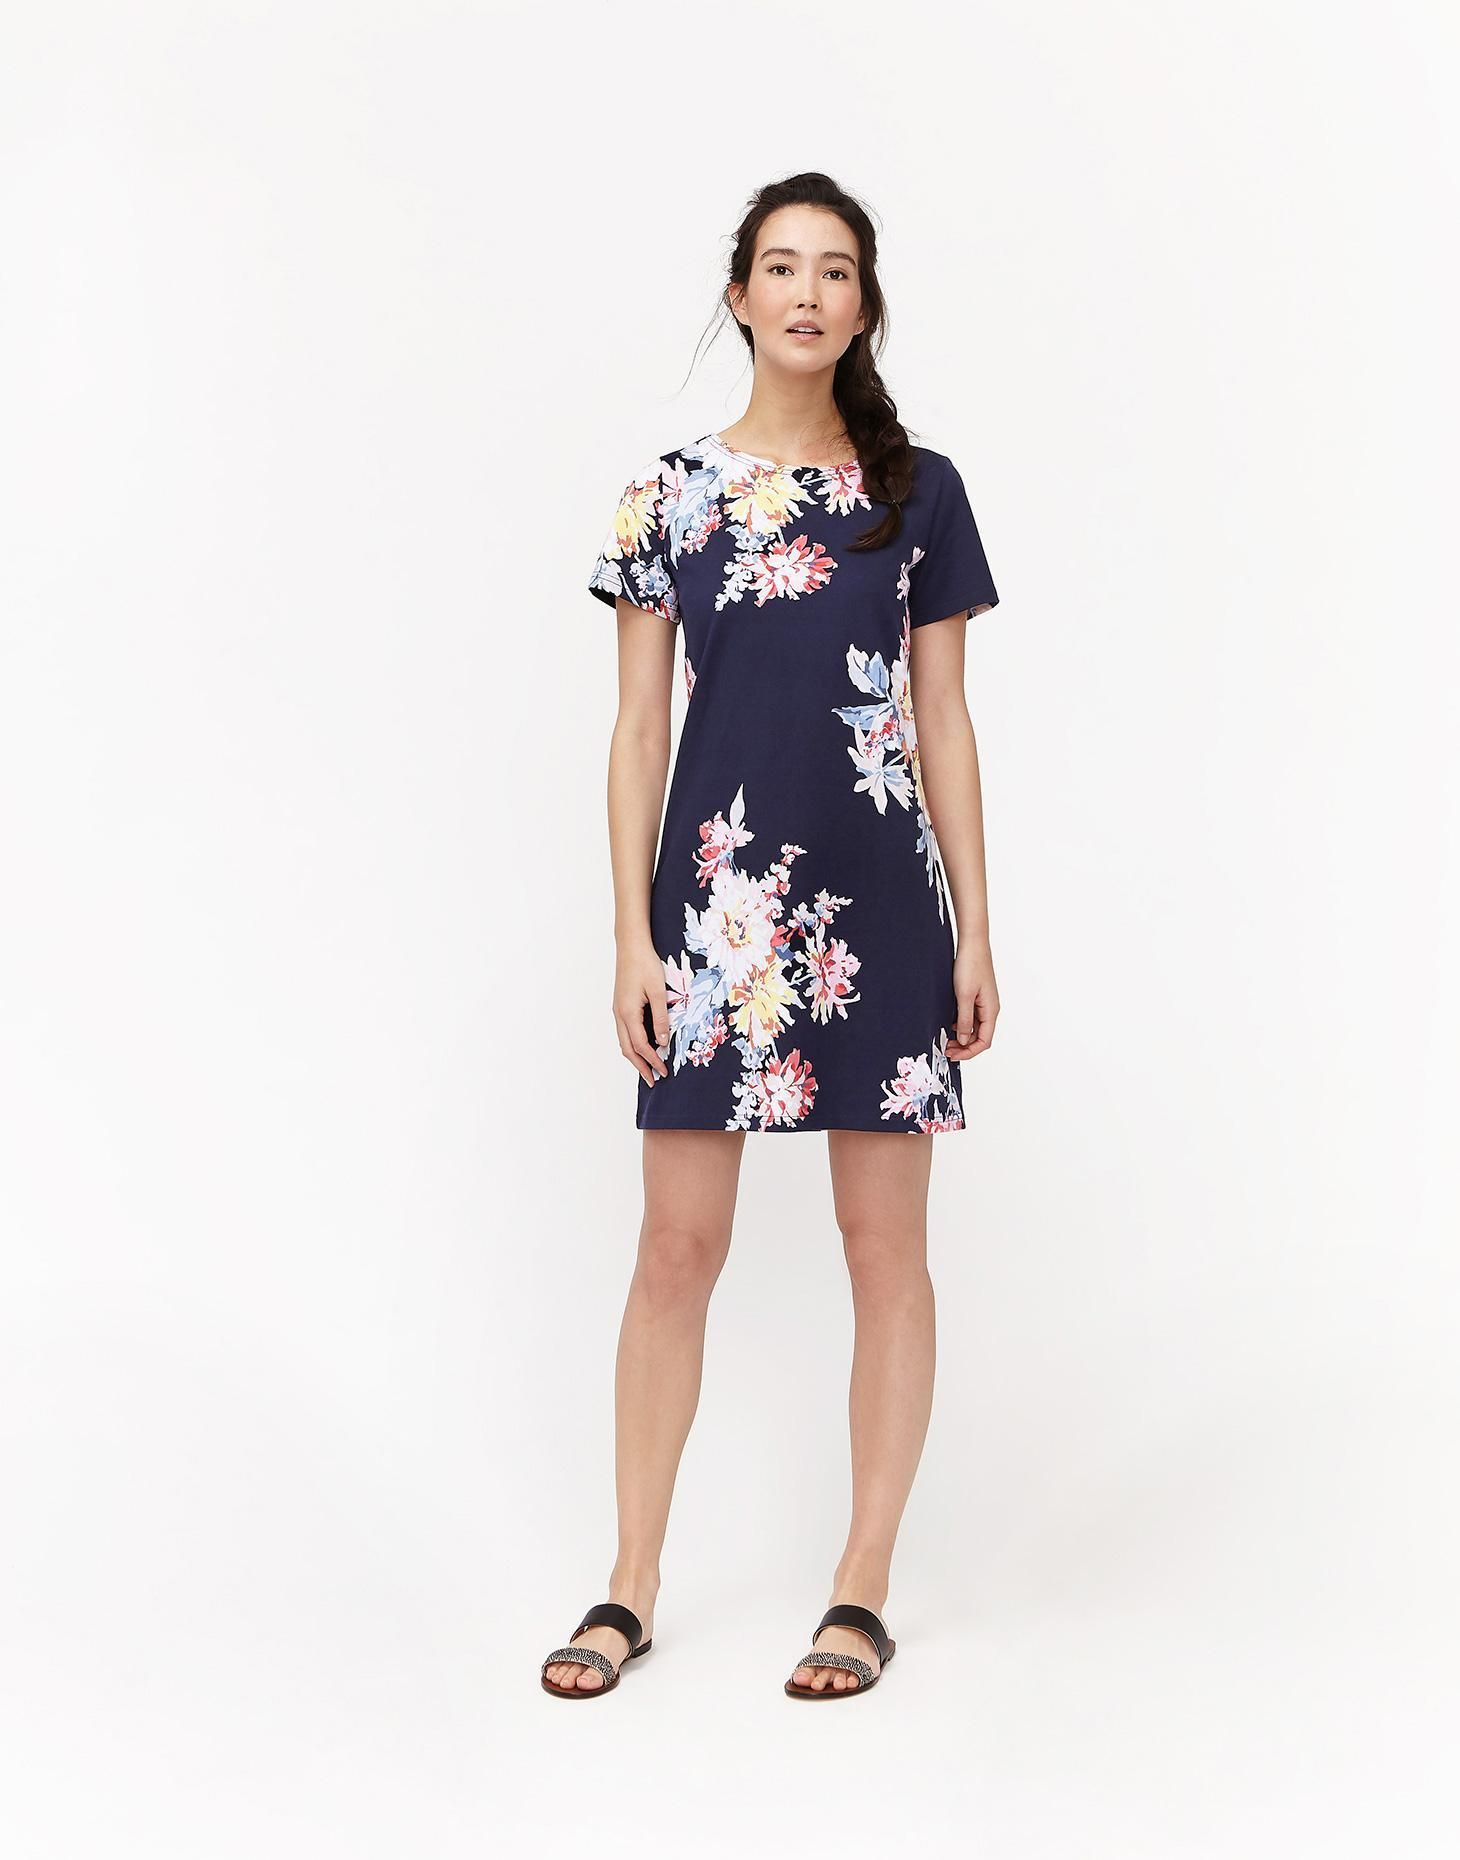 b5739ad60d2 Riviera printed Navy Whitstable Floral Jersey Dress | Joules US ...